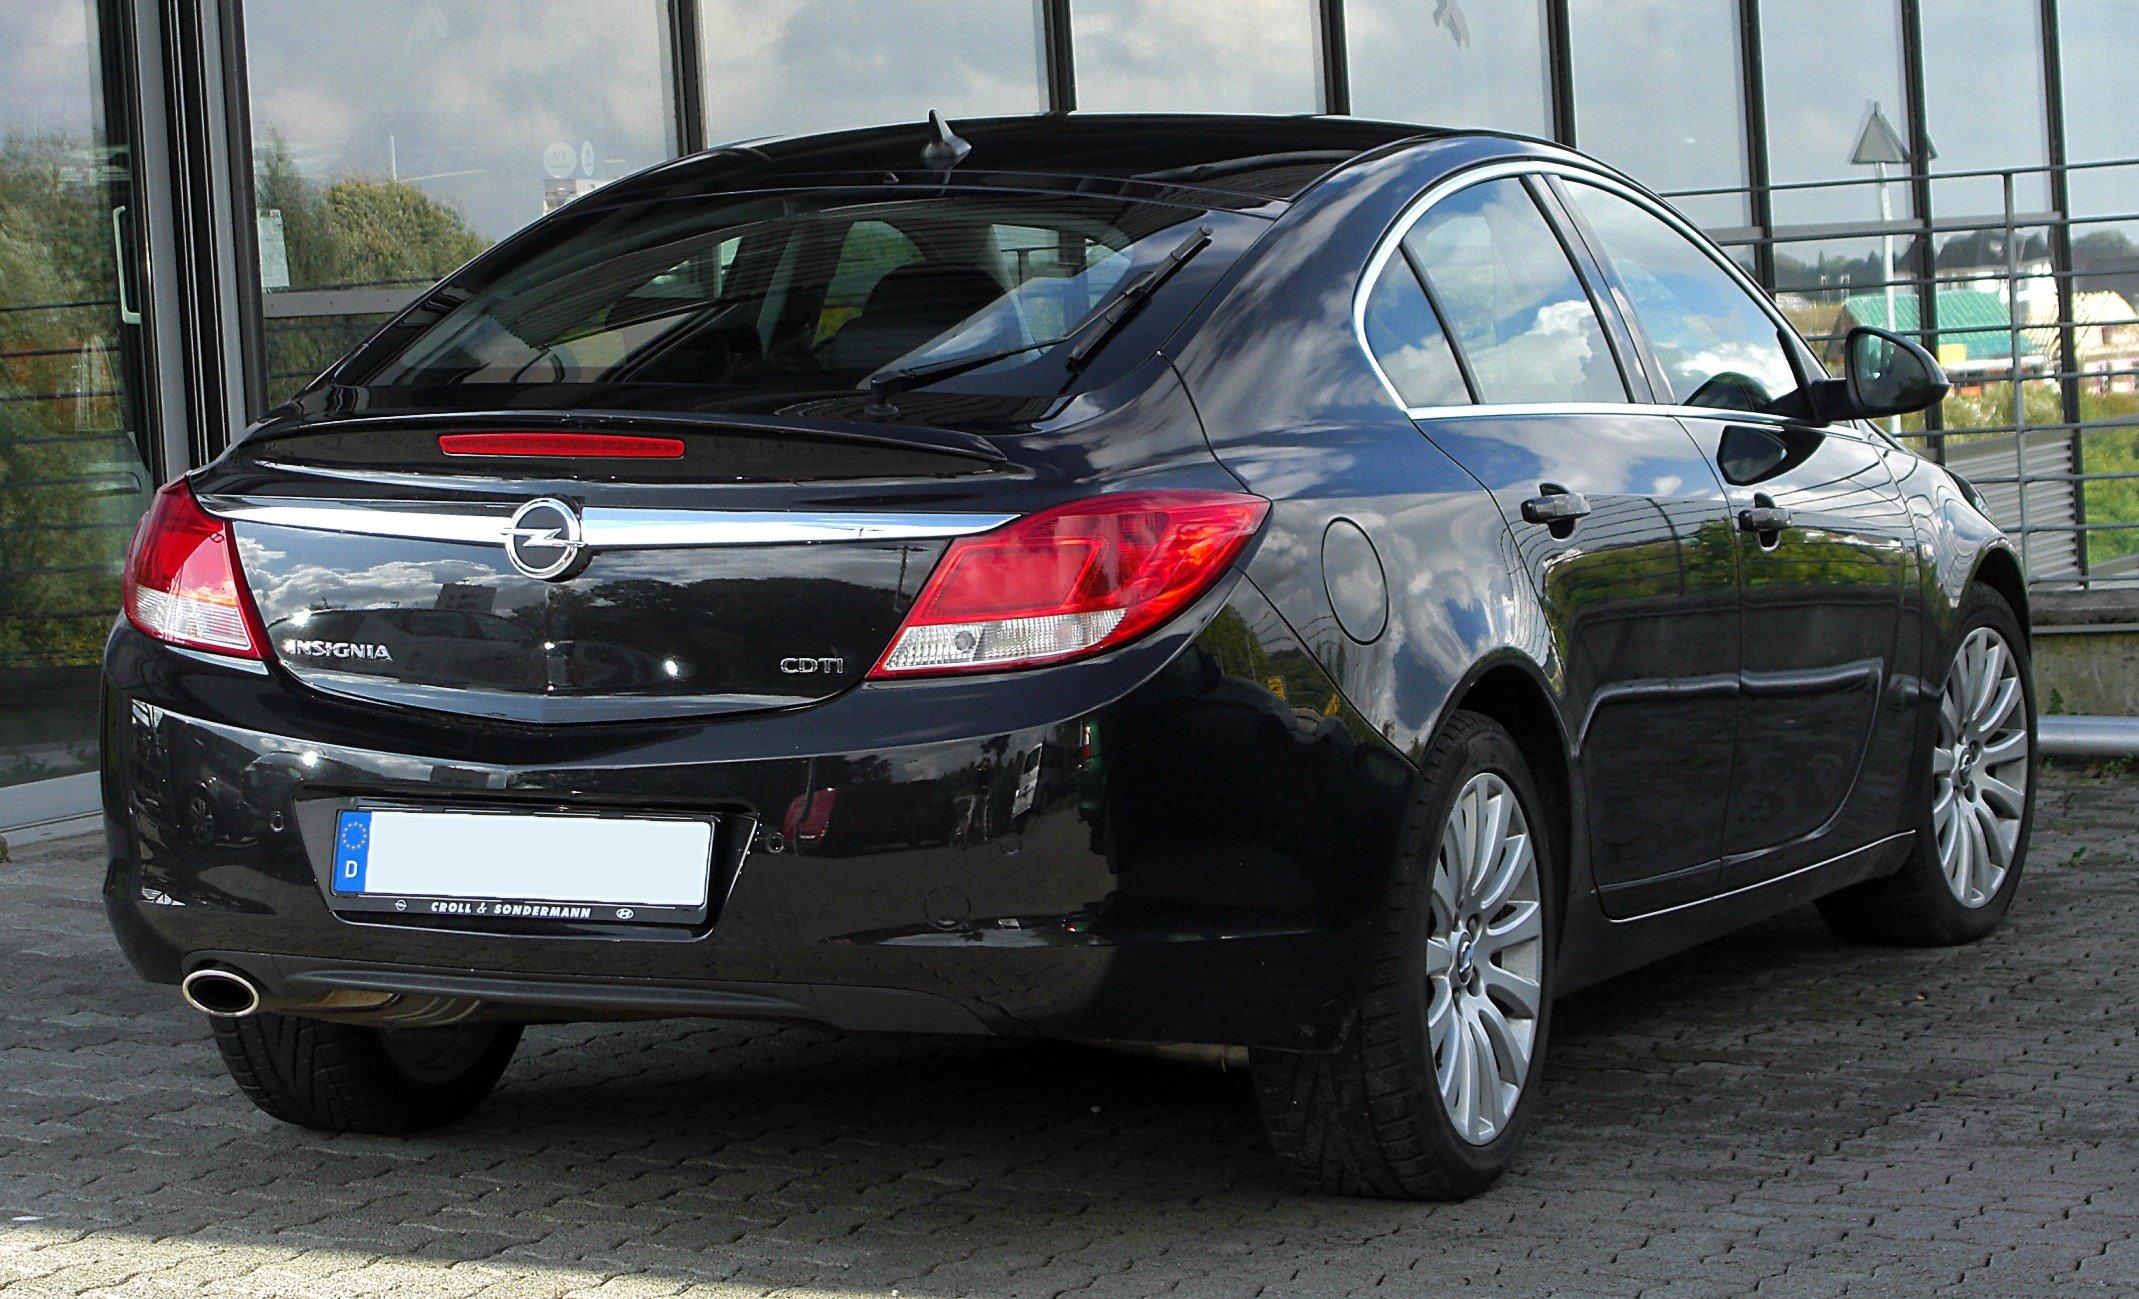 Latest Reliable Car Opel Insignia Wallpapers And Images Free Download